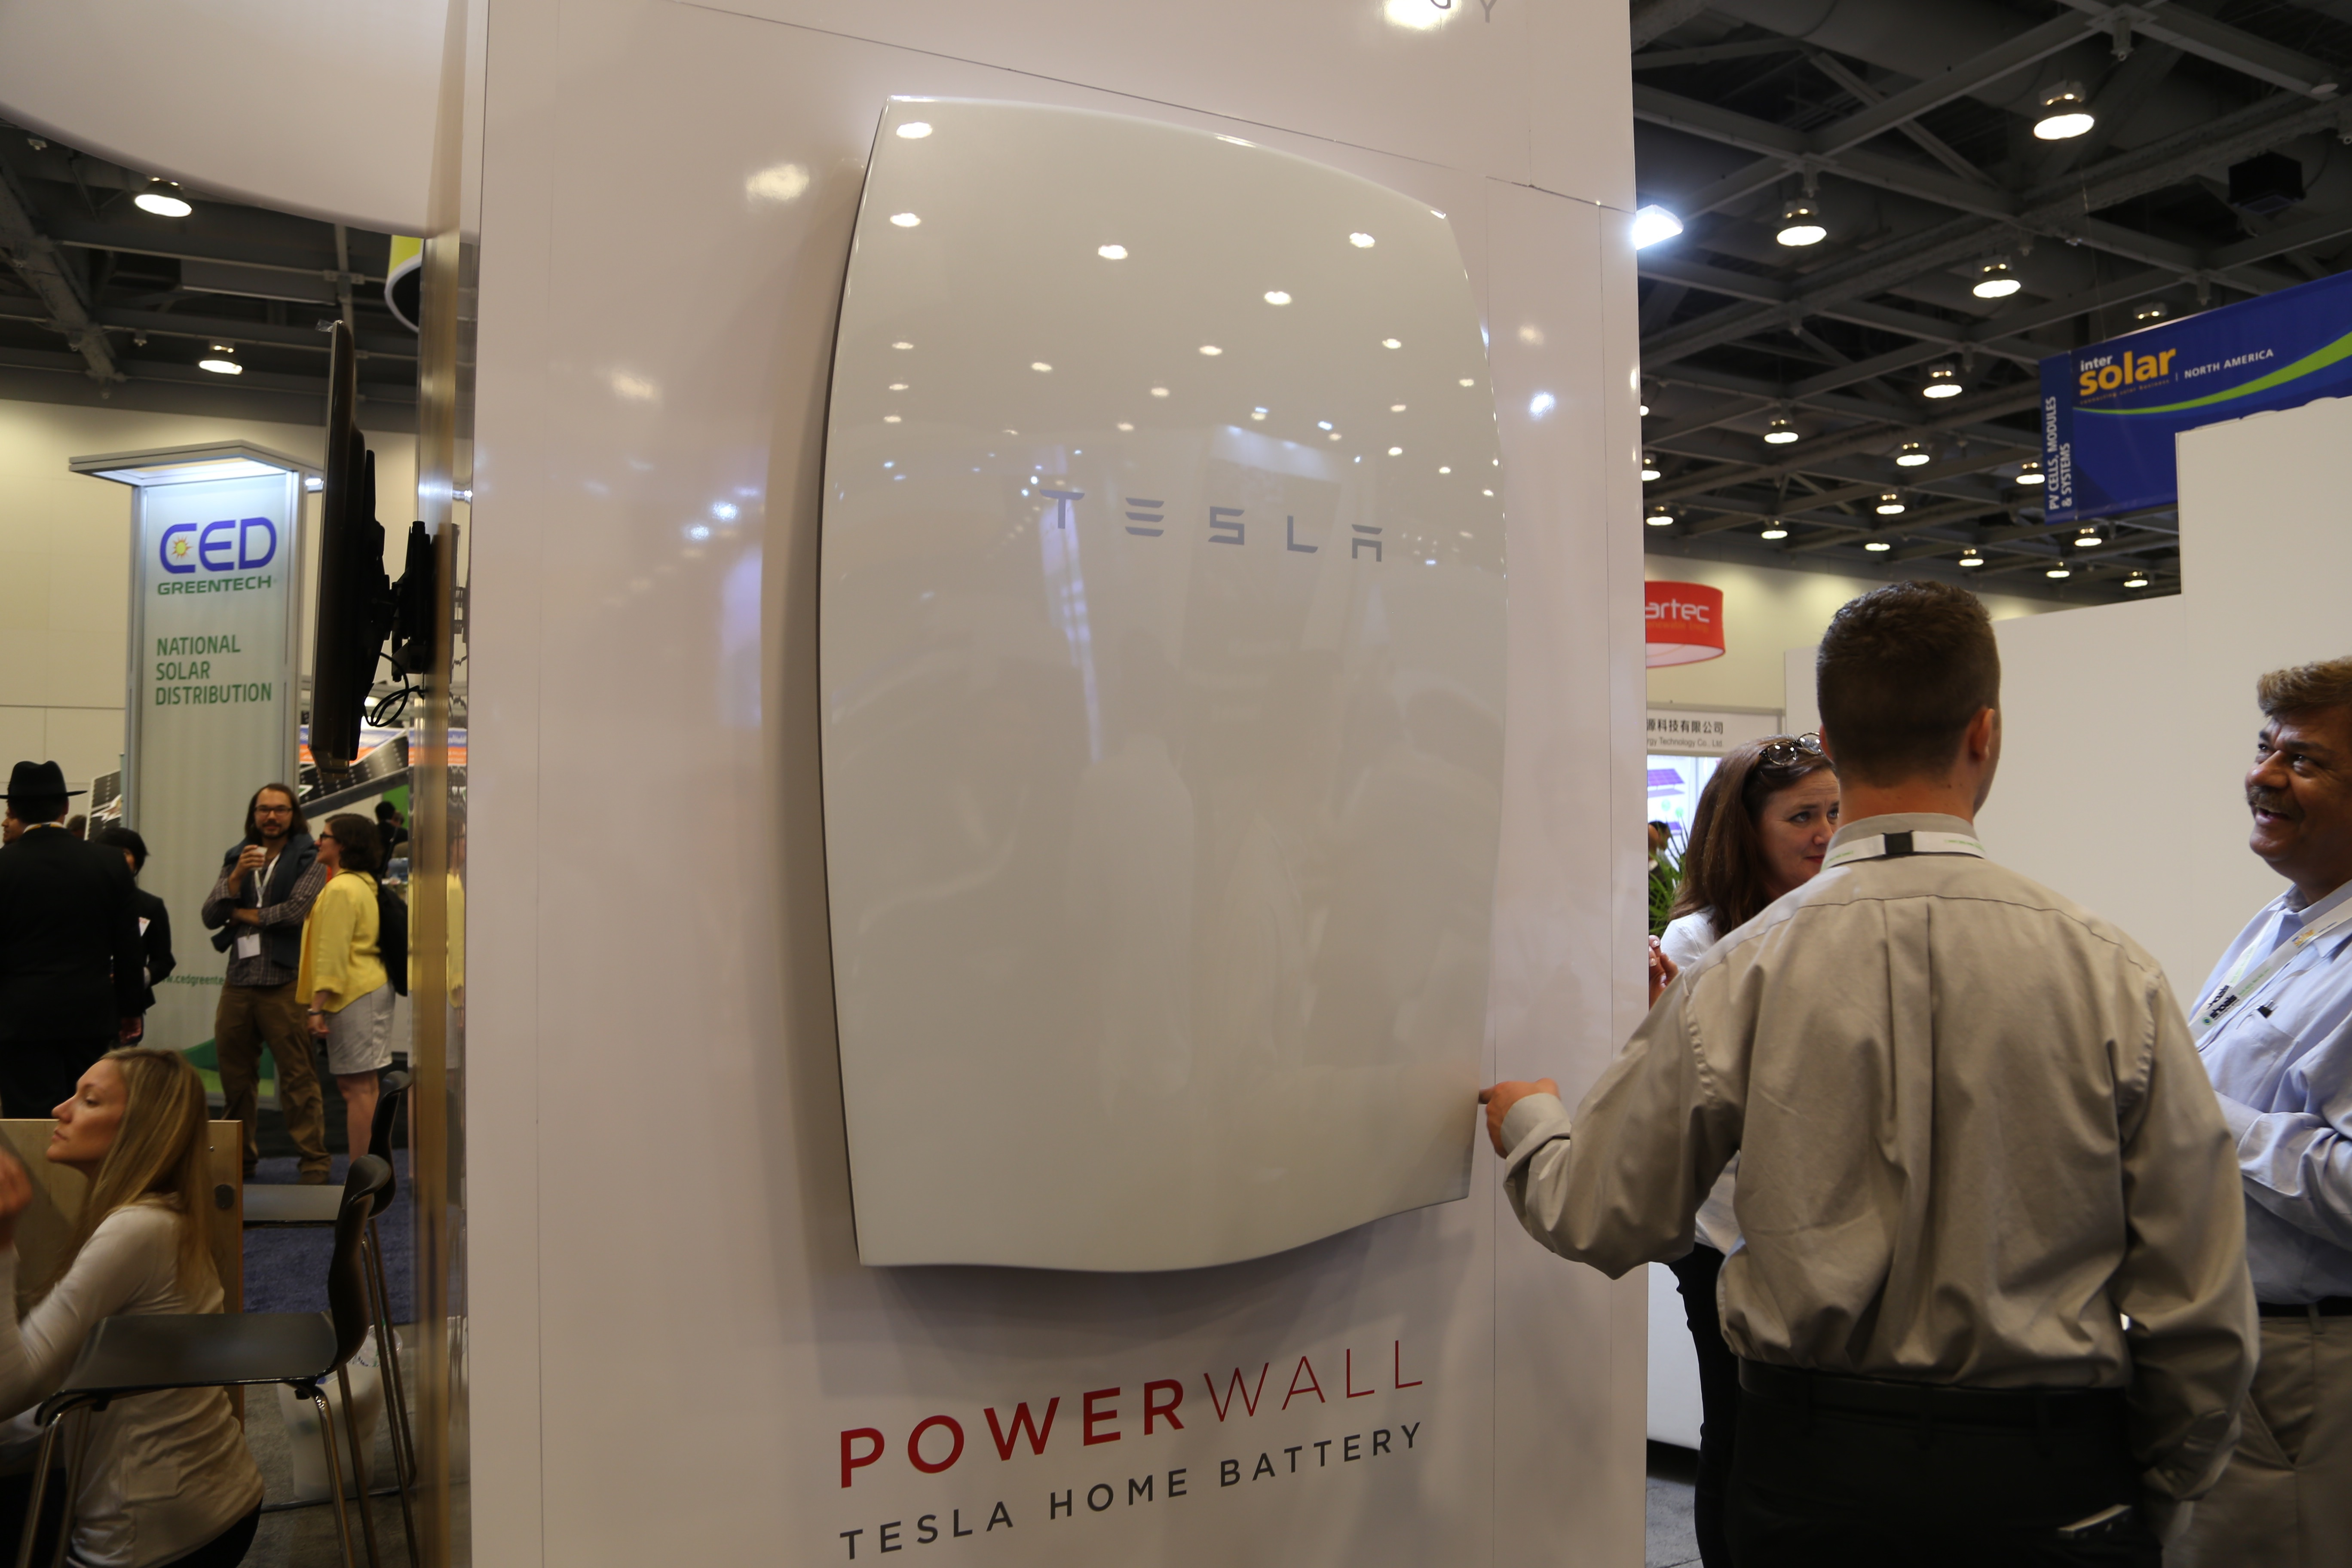 A Tesla Powerwall on display at Intersolar 2015.